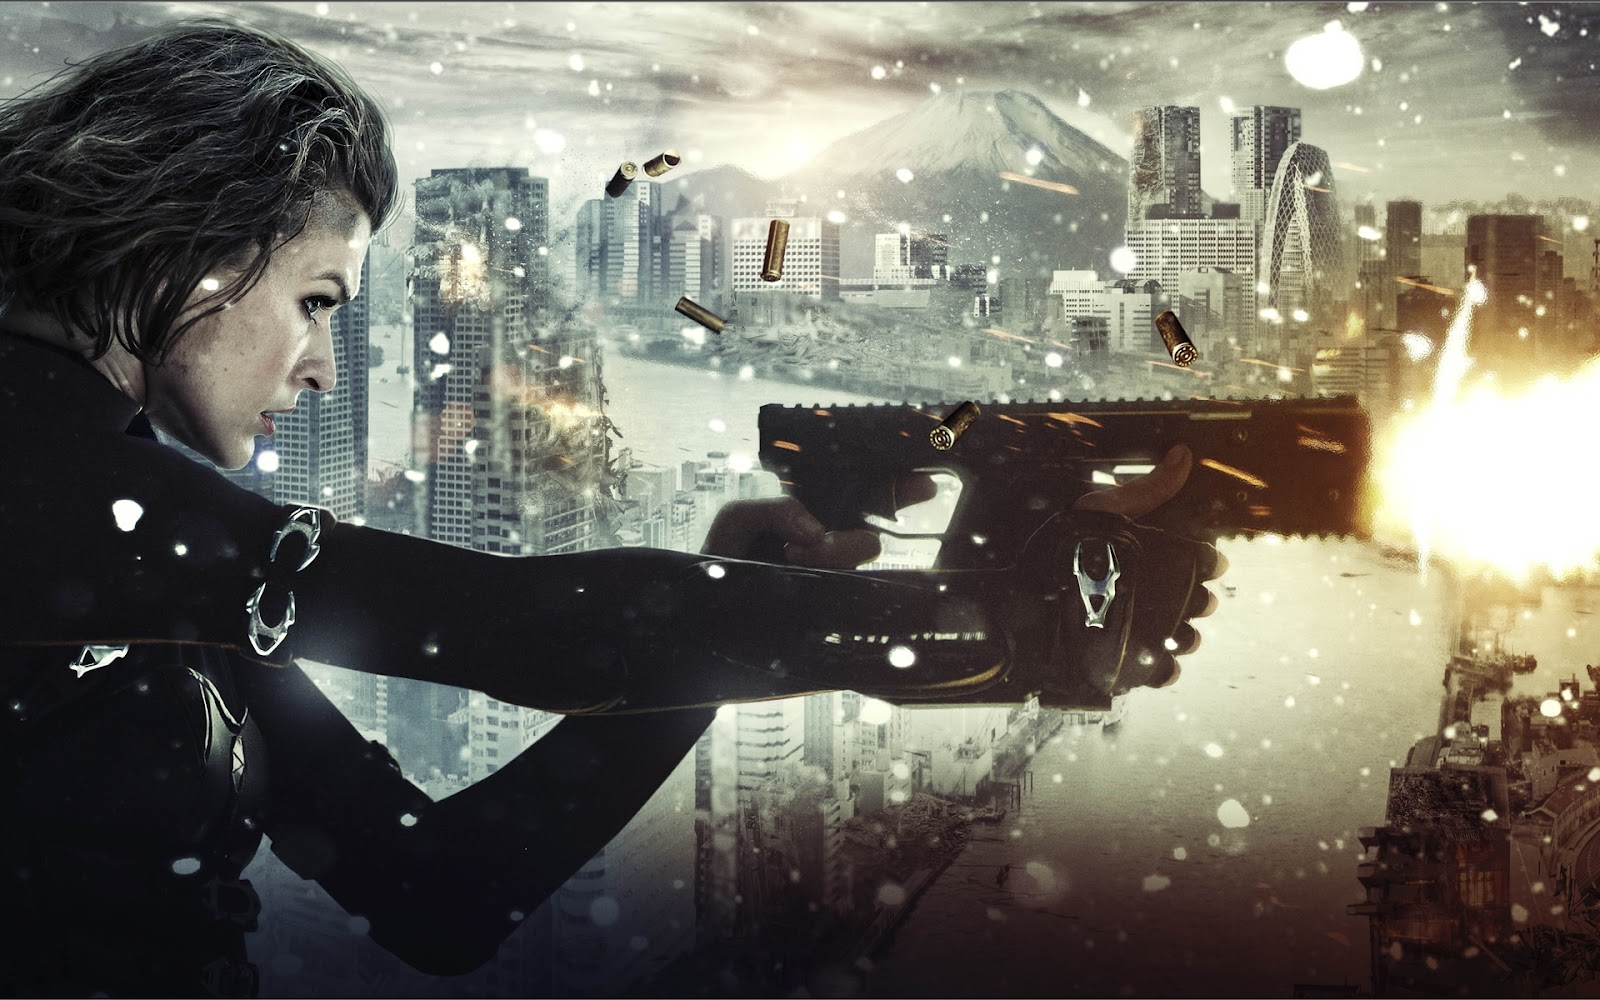 http://3.bp.blogspot.com/-BmY3m5YXnQI/T7O4nq-bIRI/AAAAAAAAAWI/4yWsV3_BCbs/s1600/Resident-Evil-Retribution-2012-Wallpaper-Movie-2.jpg